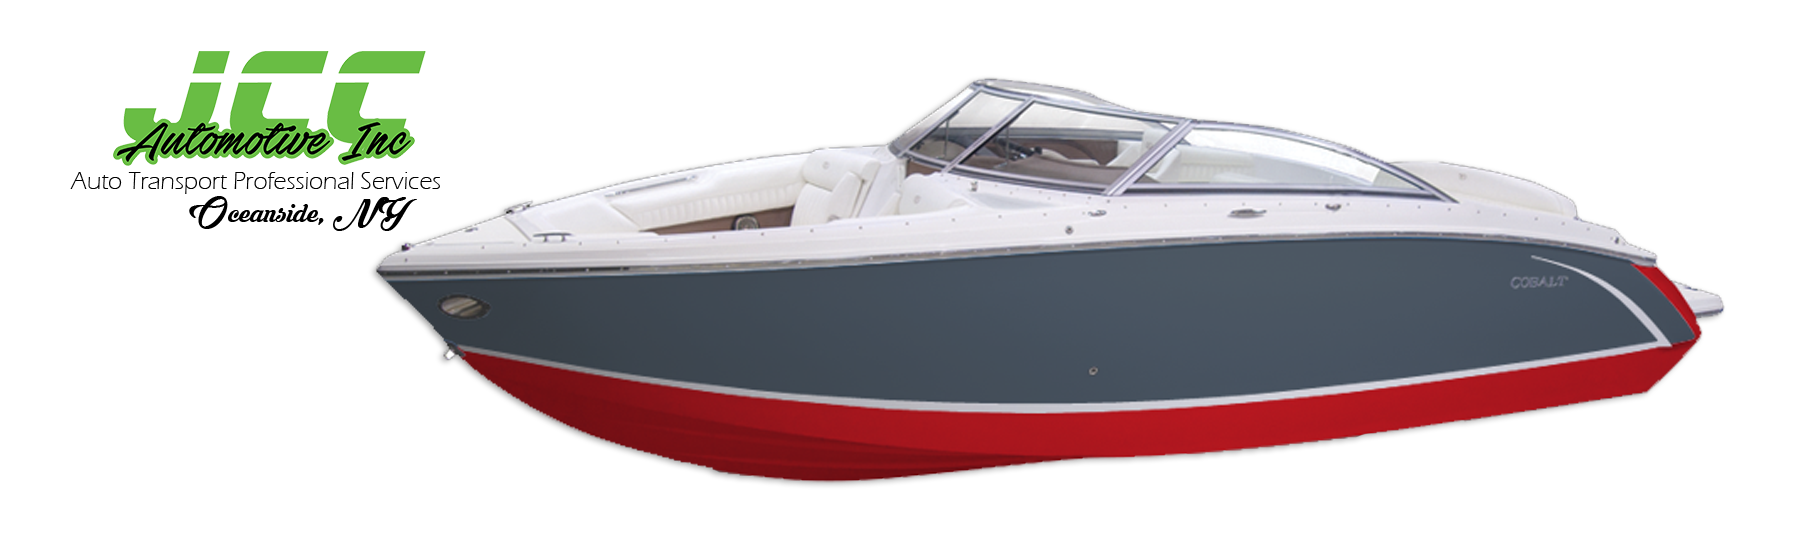 JCC Automotive Inc. | Boat Transport Professional Services, 3 New Street, Oceanside, Long Island, NY, 11572 | PHONE: 516-287-4189, FAX: 516-599-8206